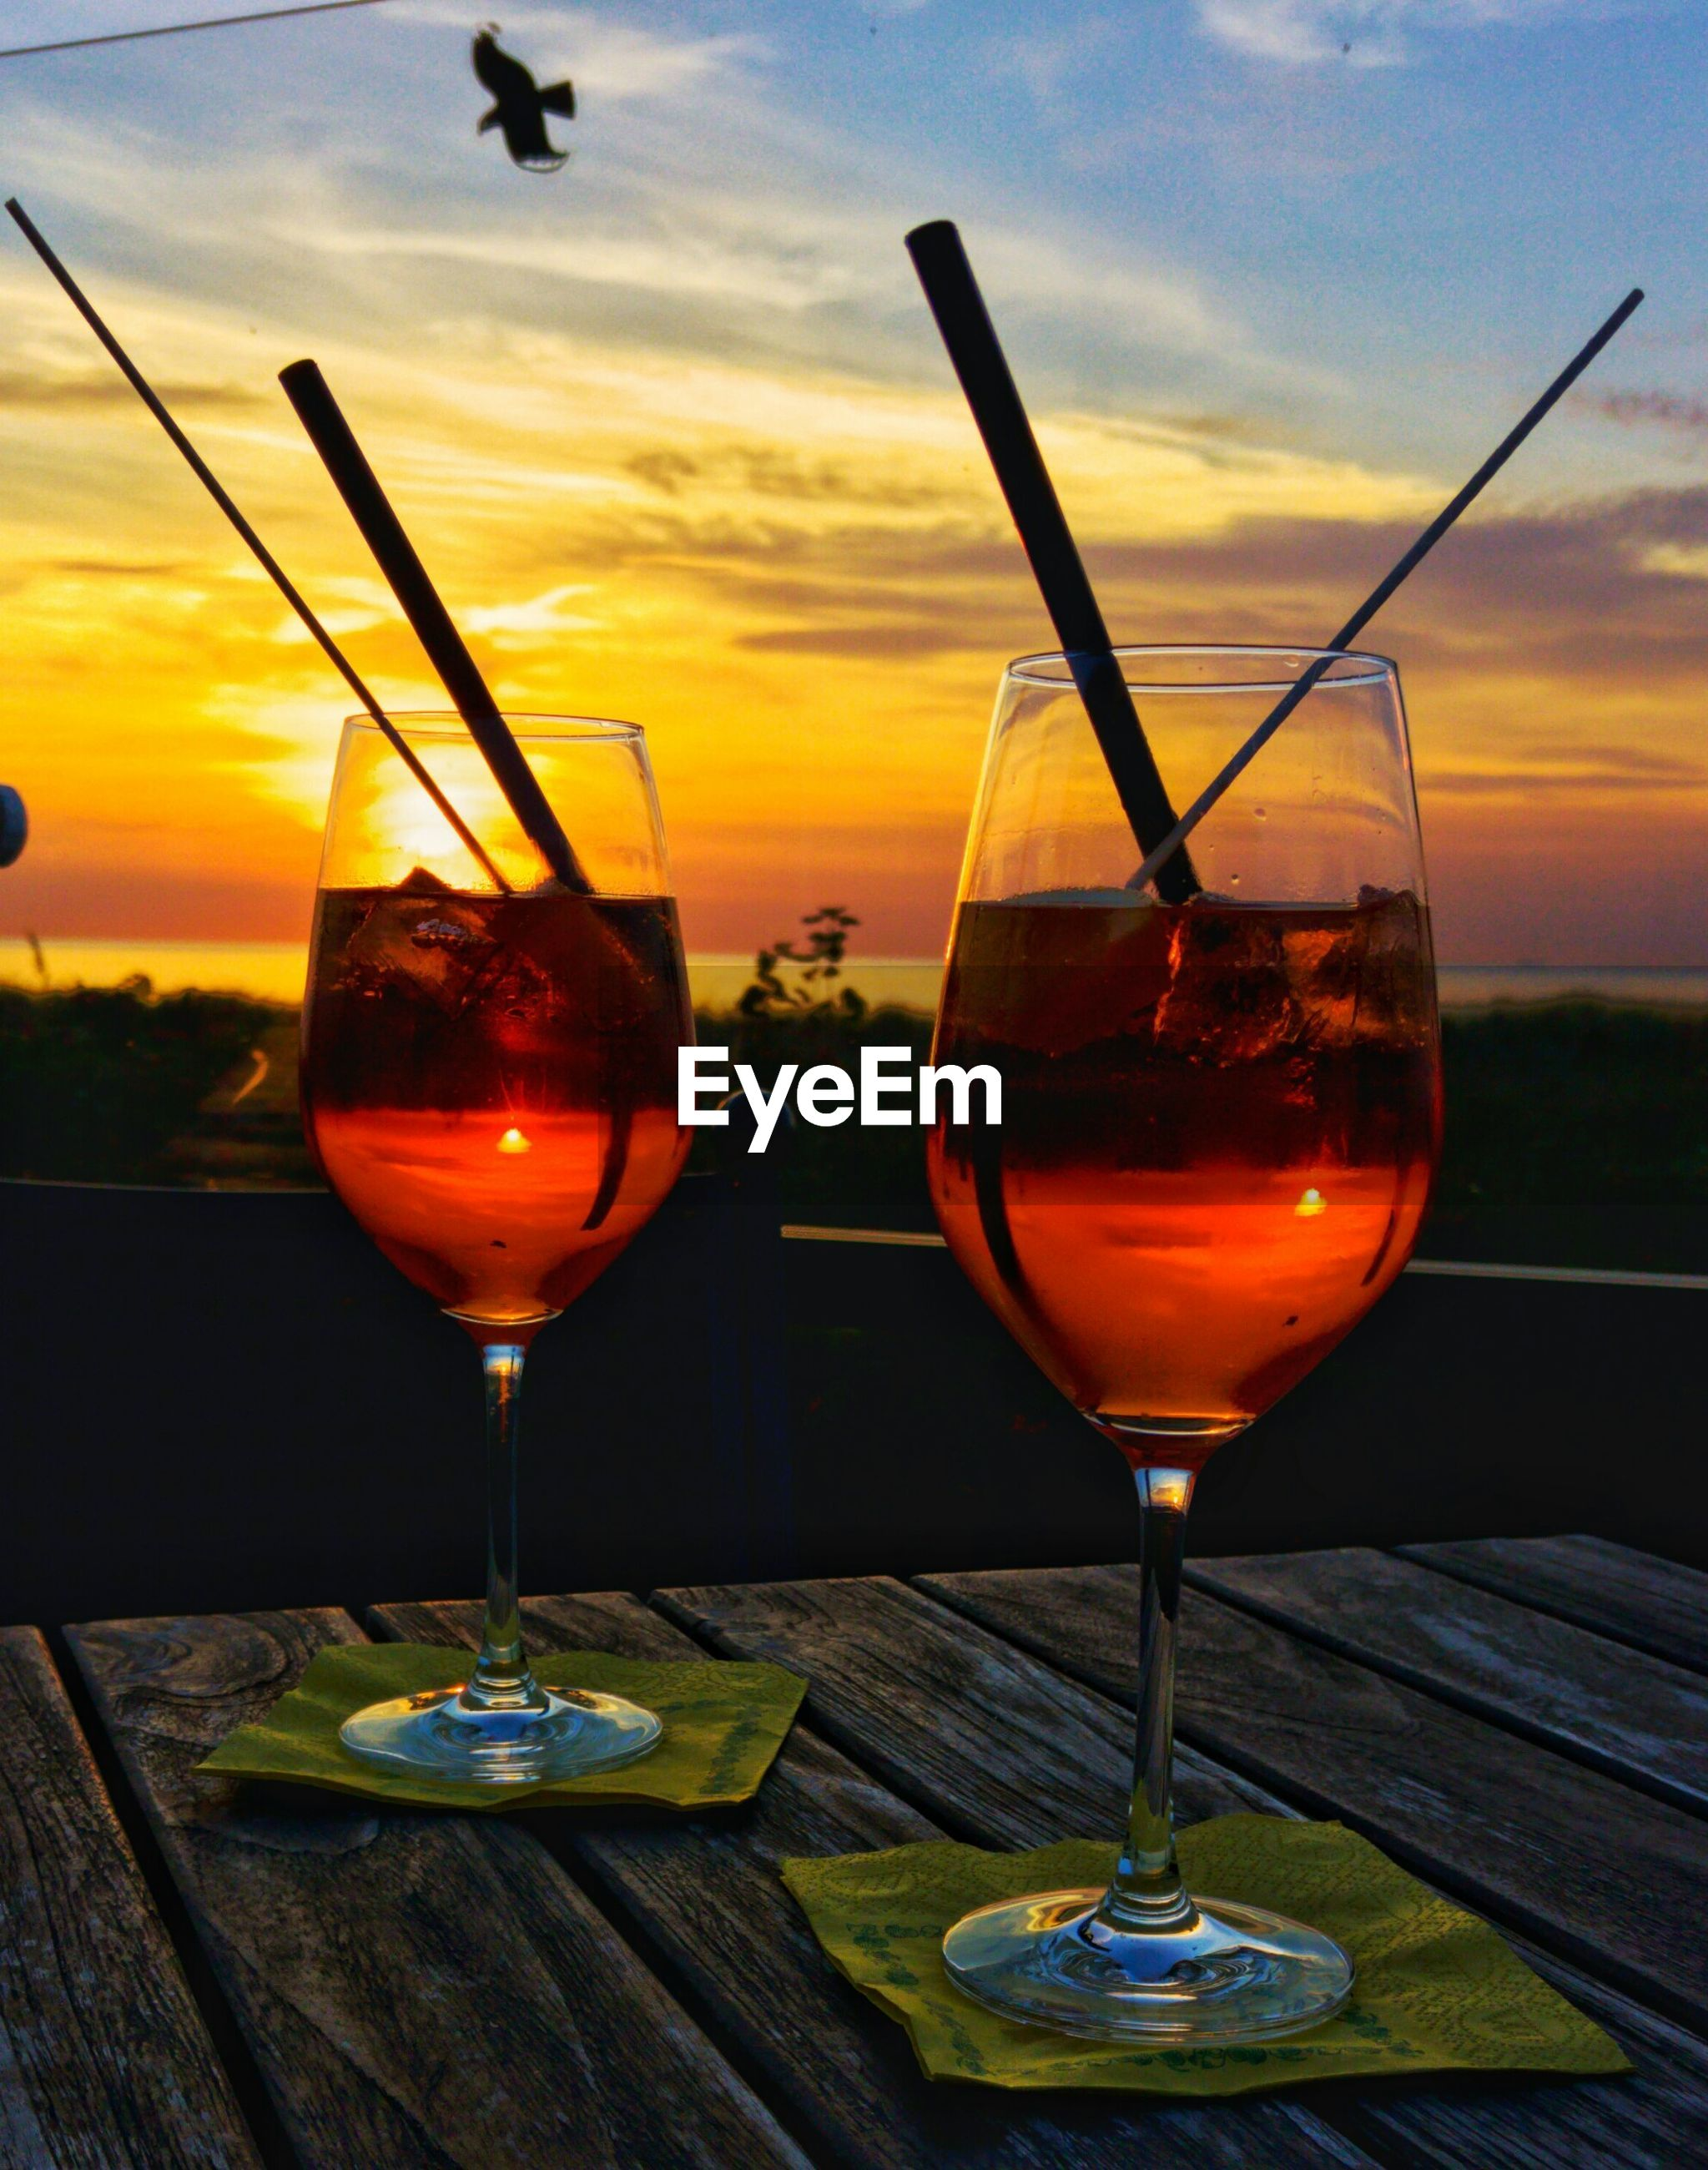 Wine glasses on table against sky during sunset